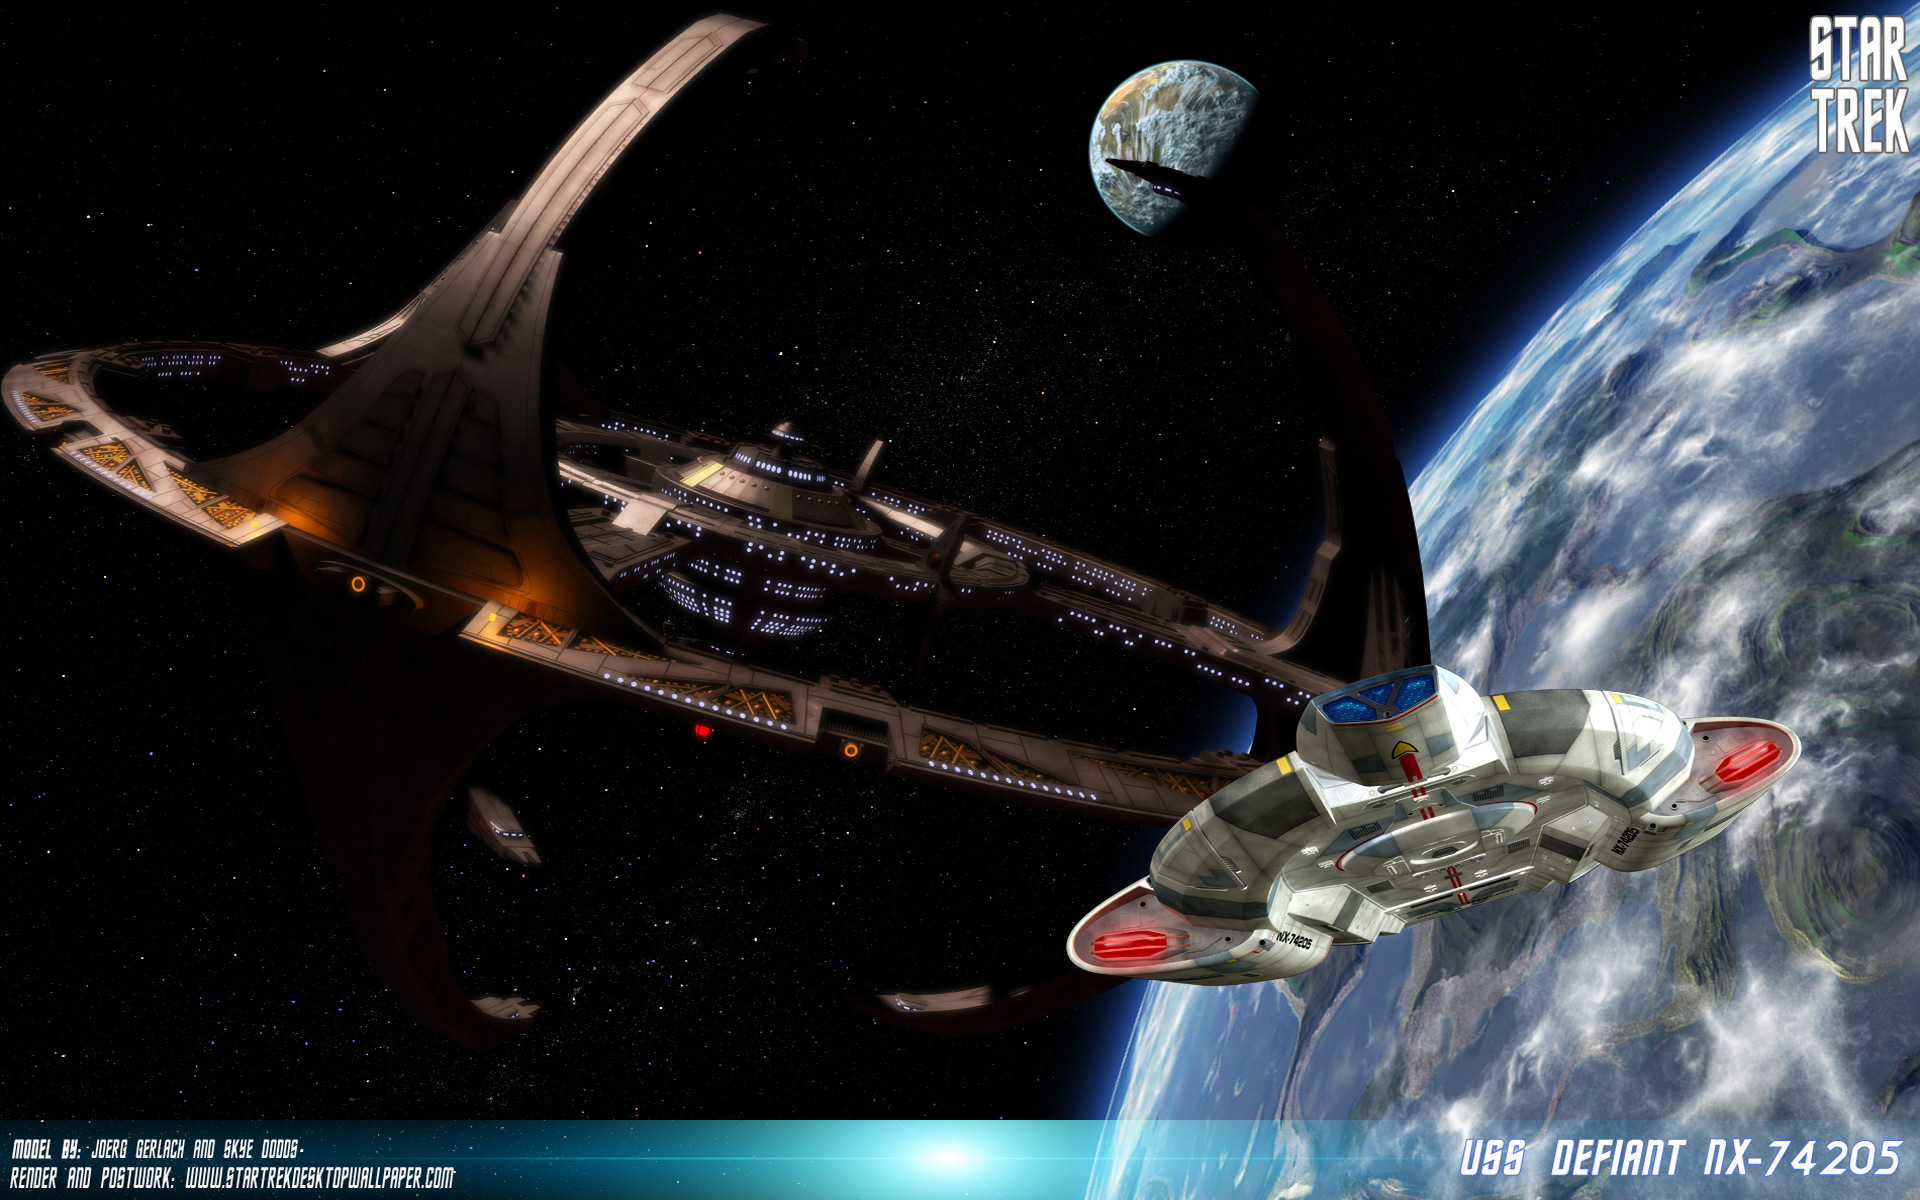 8 Star Trek: Deep Space Nine Wallpapers | Star Trek: Deep Space